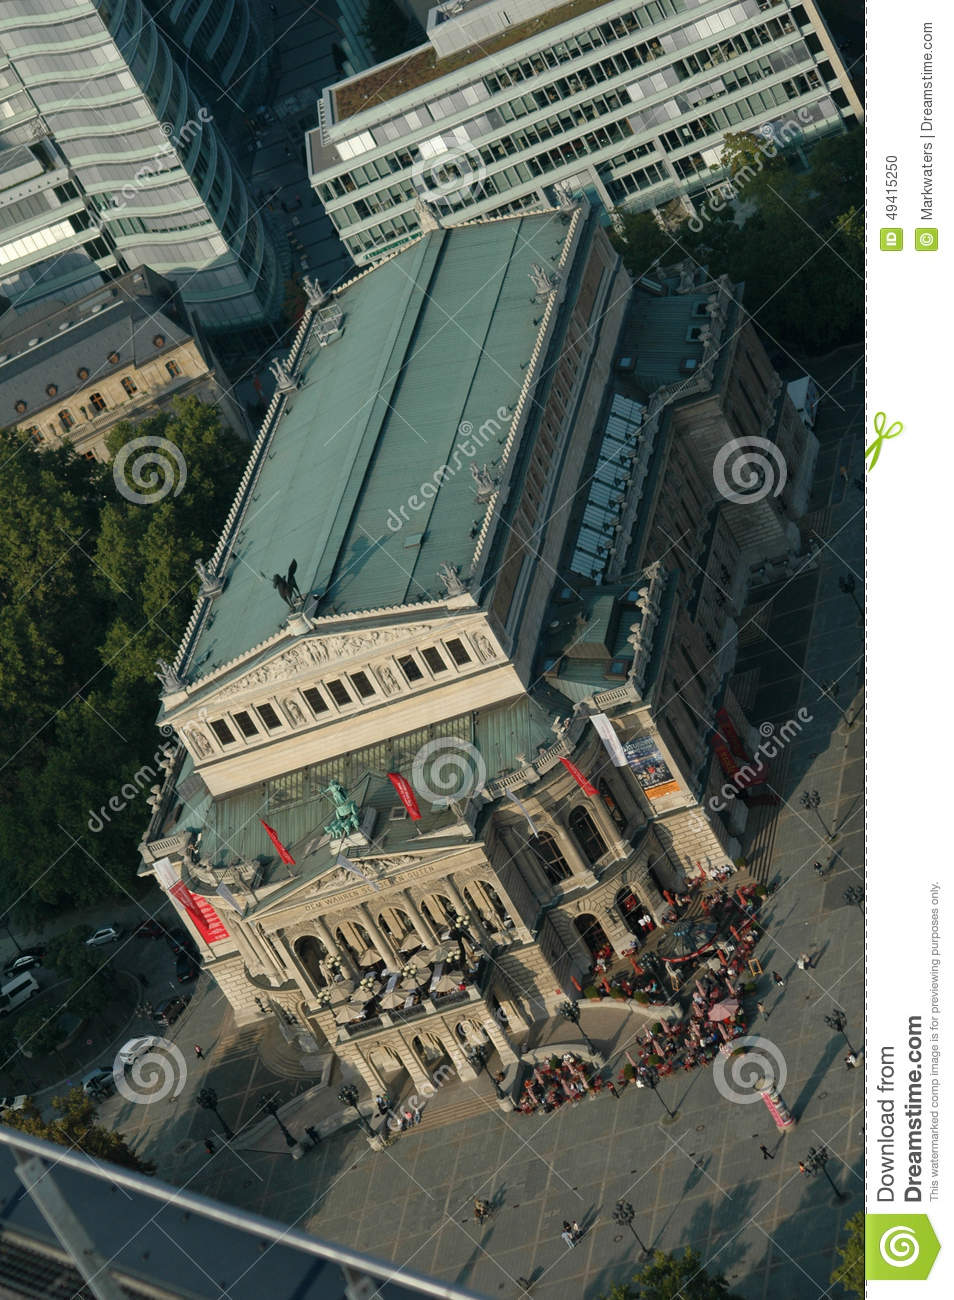 Download Alte Operation Frankfurt redaktionelles bild. Bild von oper - 49415250